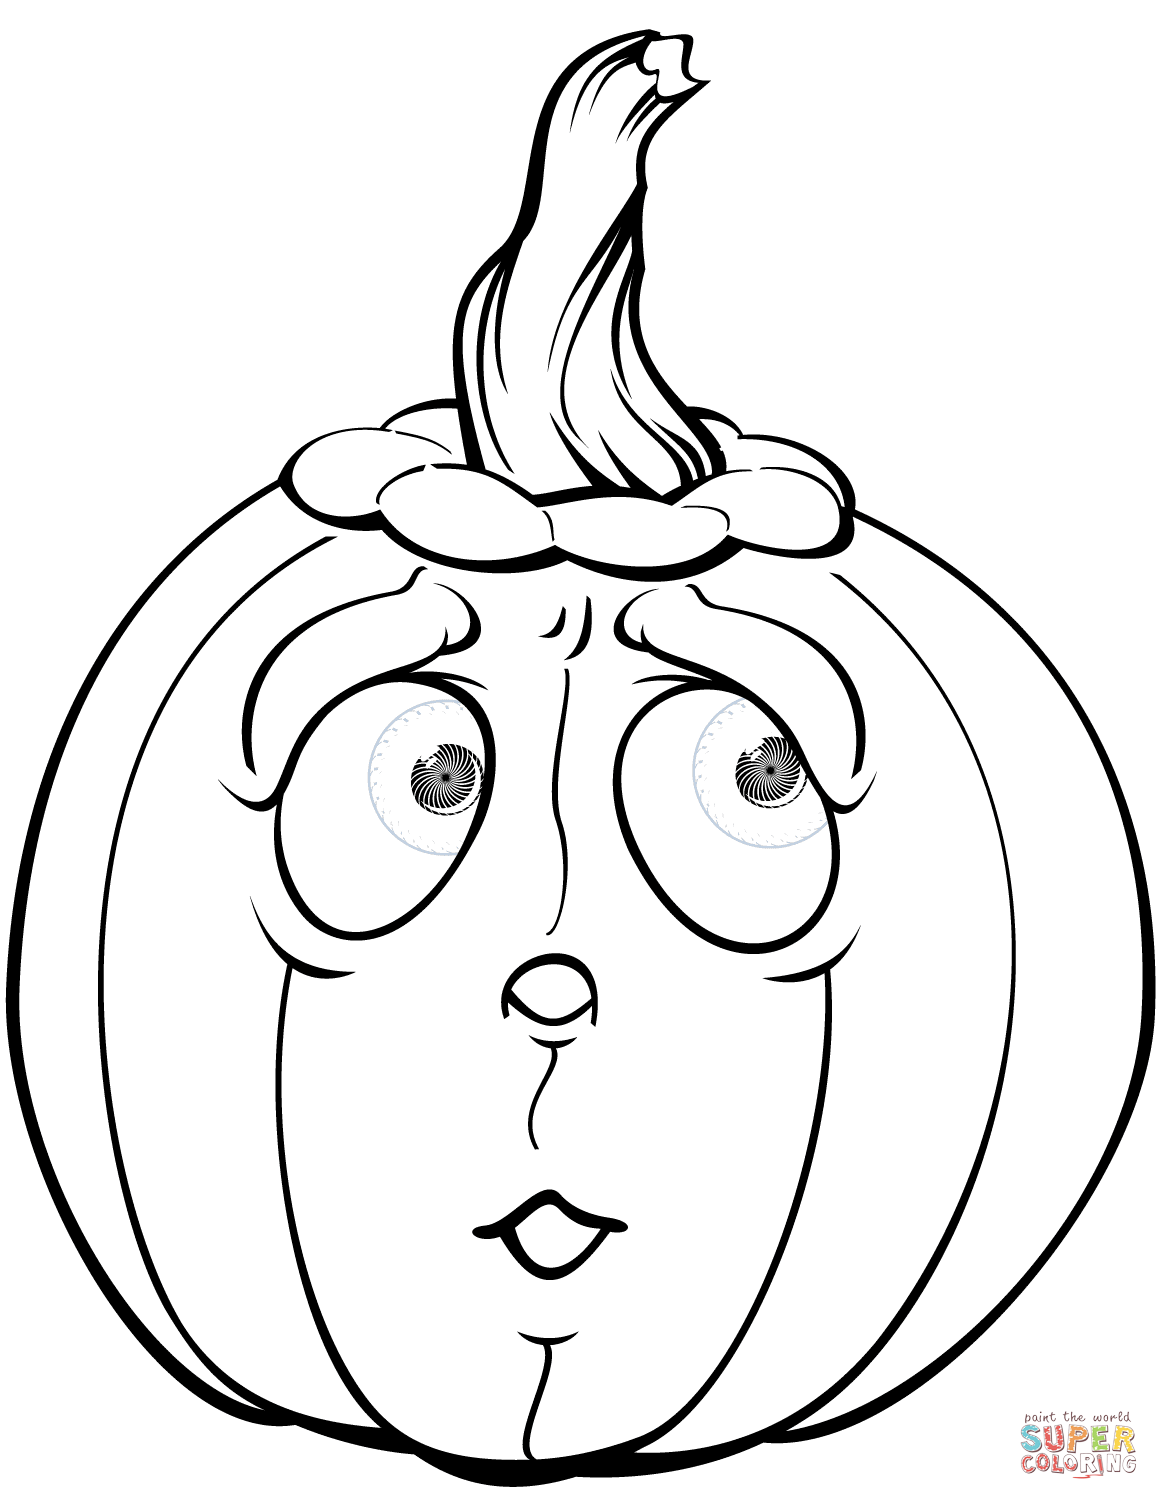 21 Ideas For Pumpkin Coloring Sheet Printable